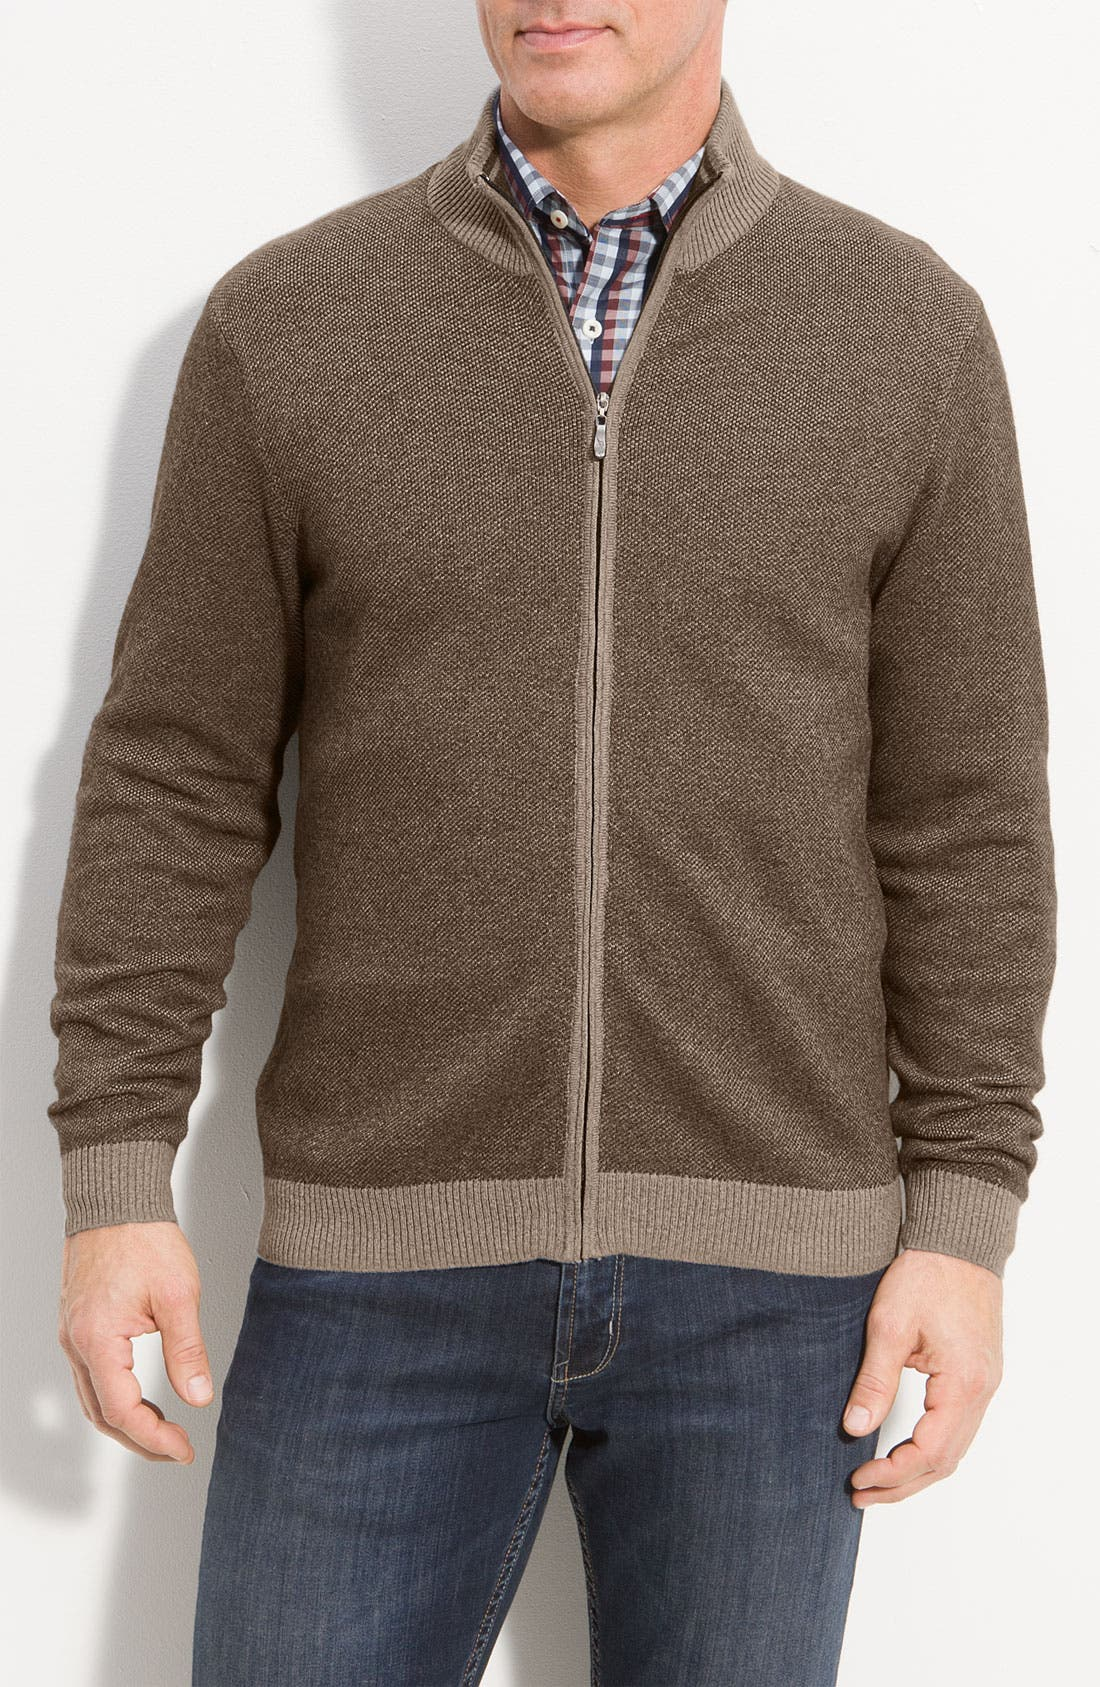 Main Image - Tommy Bahama 'Firenze' Zip Front Sweater